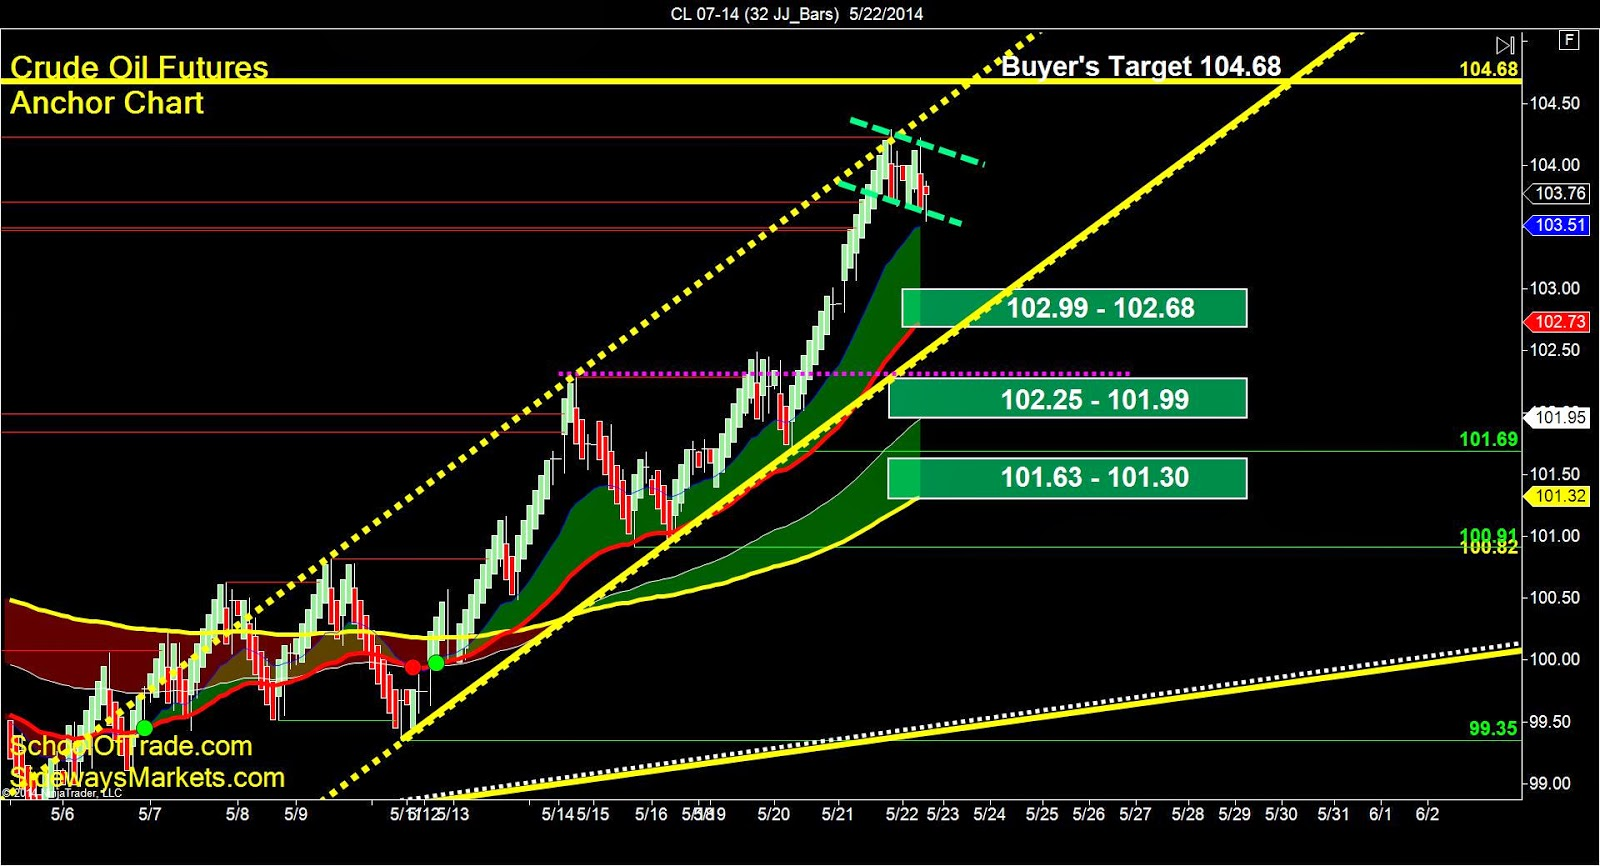 Day Trading Crude Oil Futures